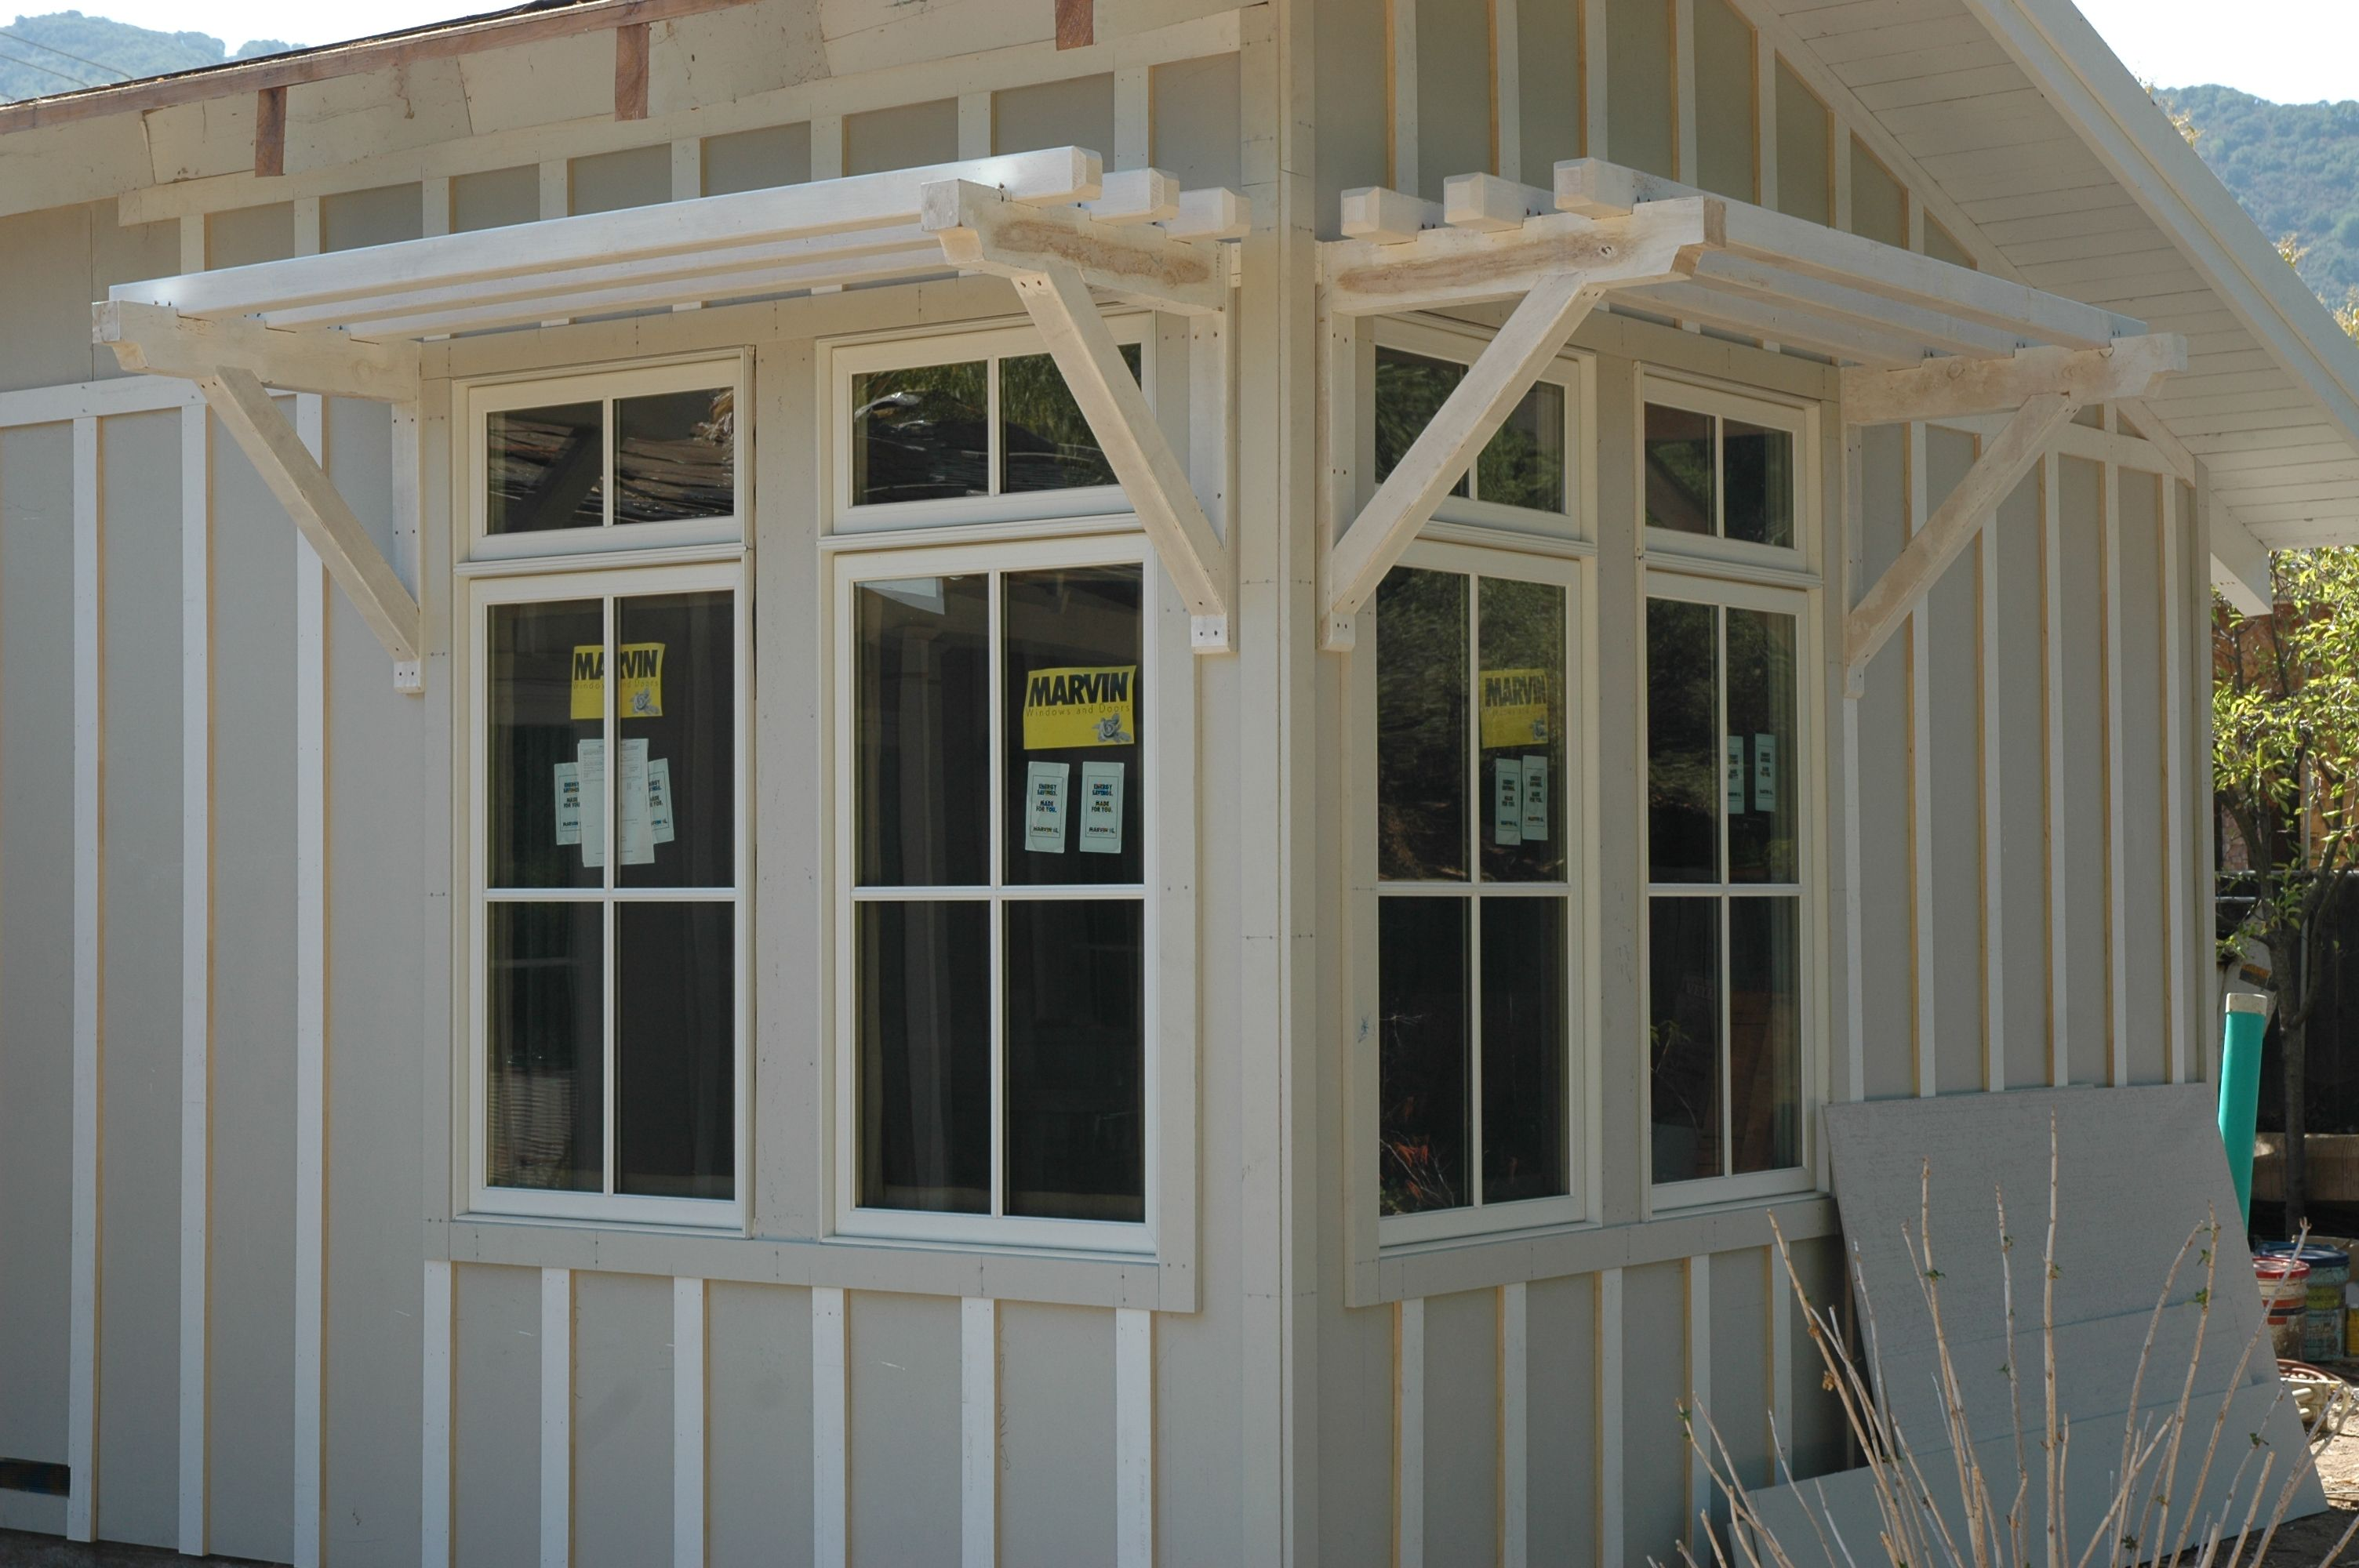 Exterior windows - Marvin Clad Ultimate Double Hung Windows Stone White Exterior With 7 8 Simulated